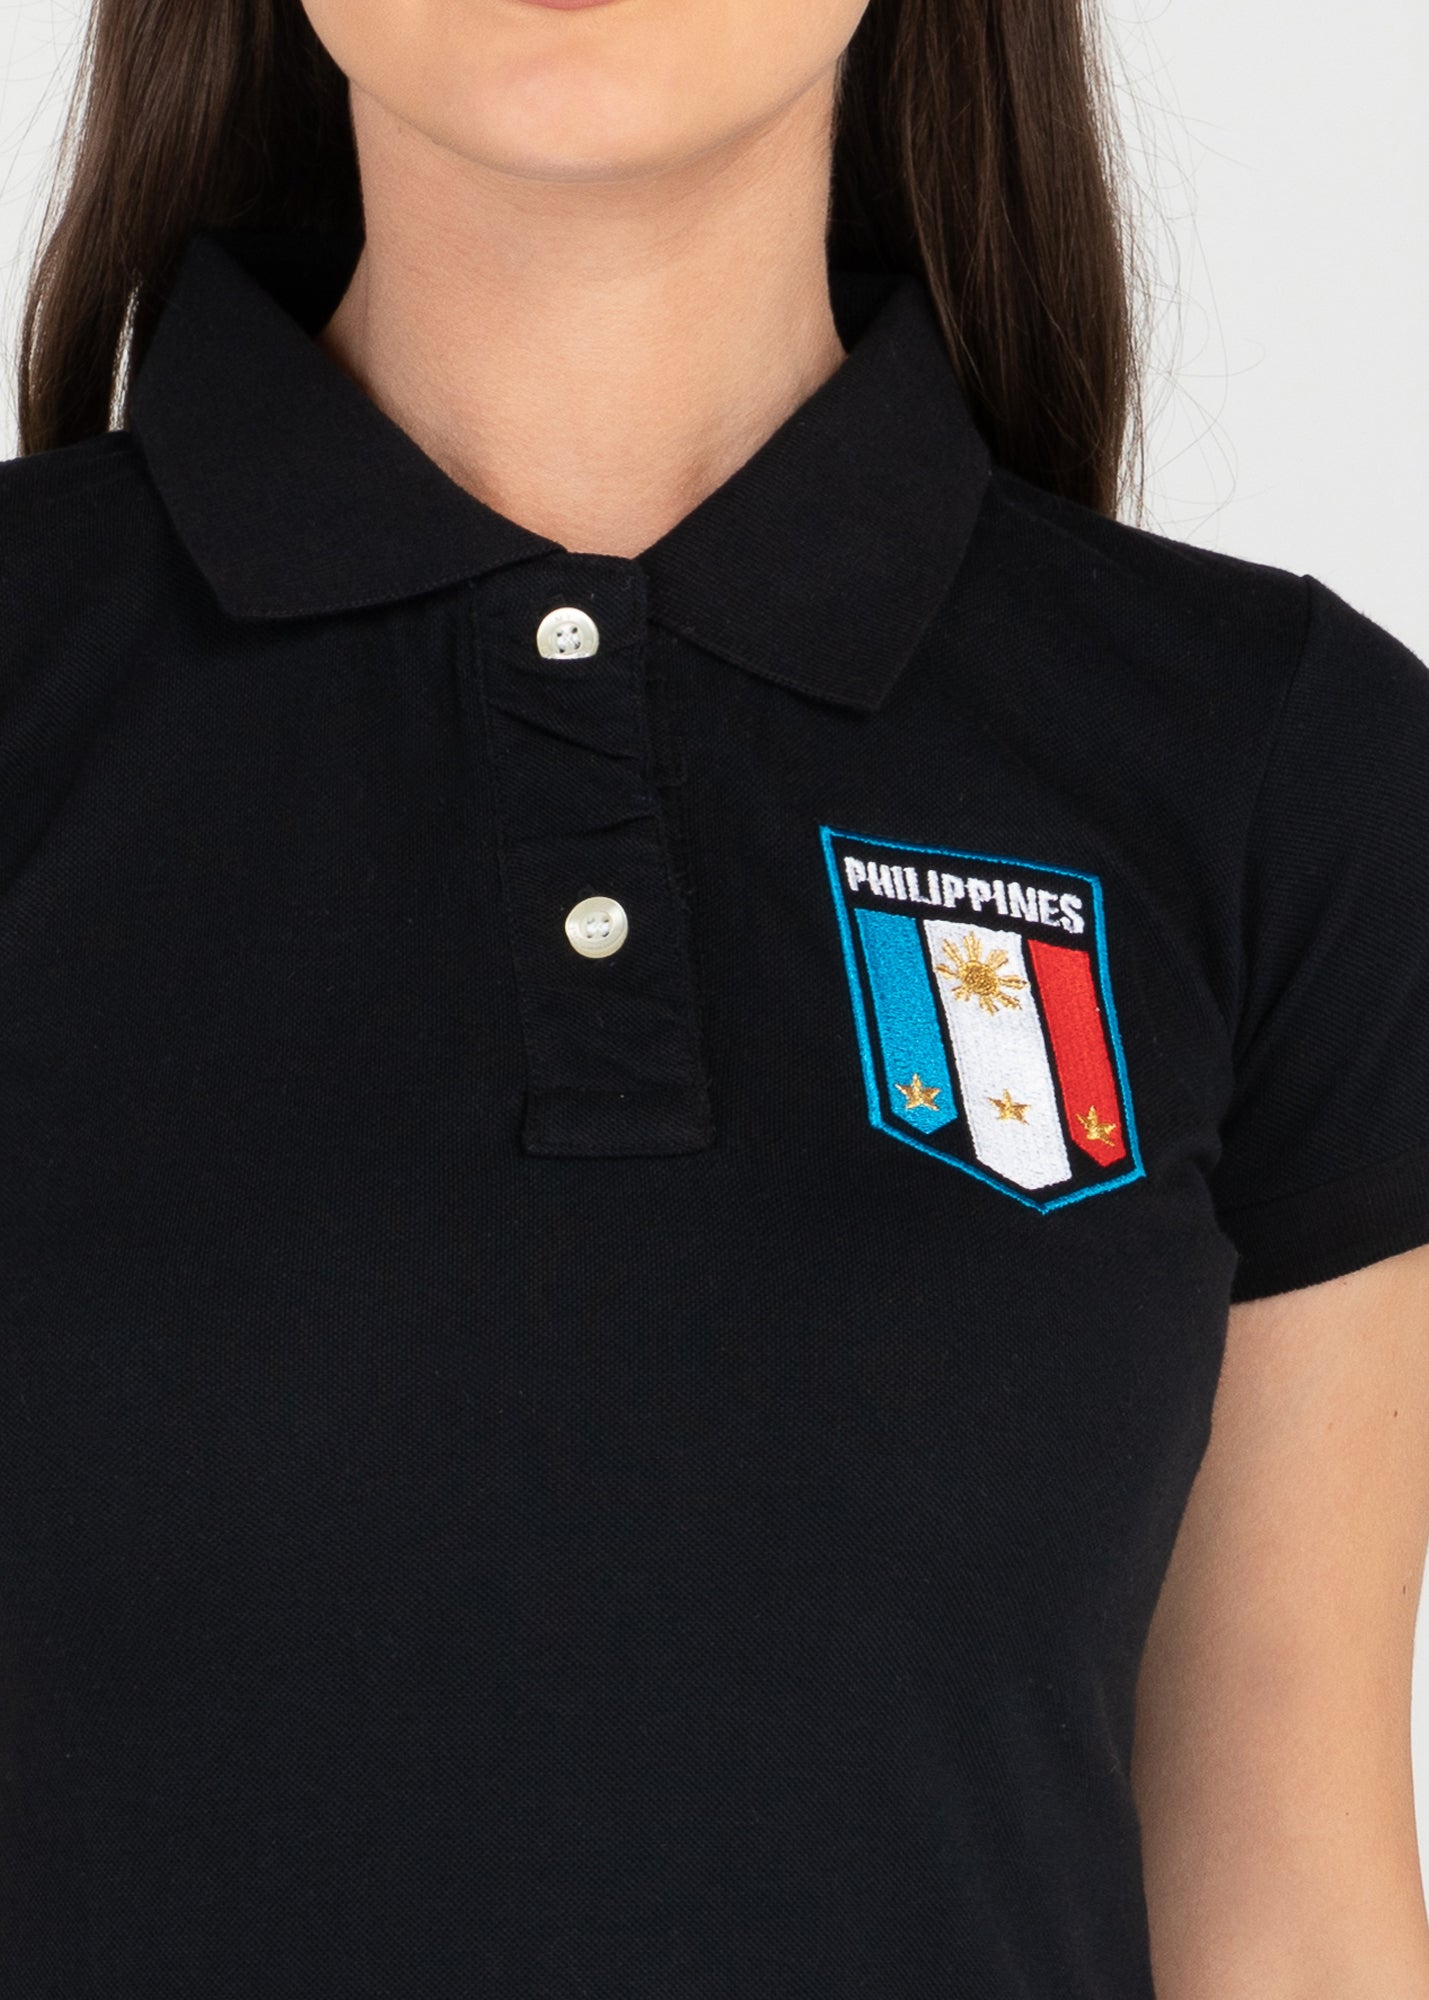 Crest Polo for Ladies